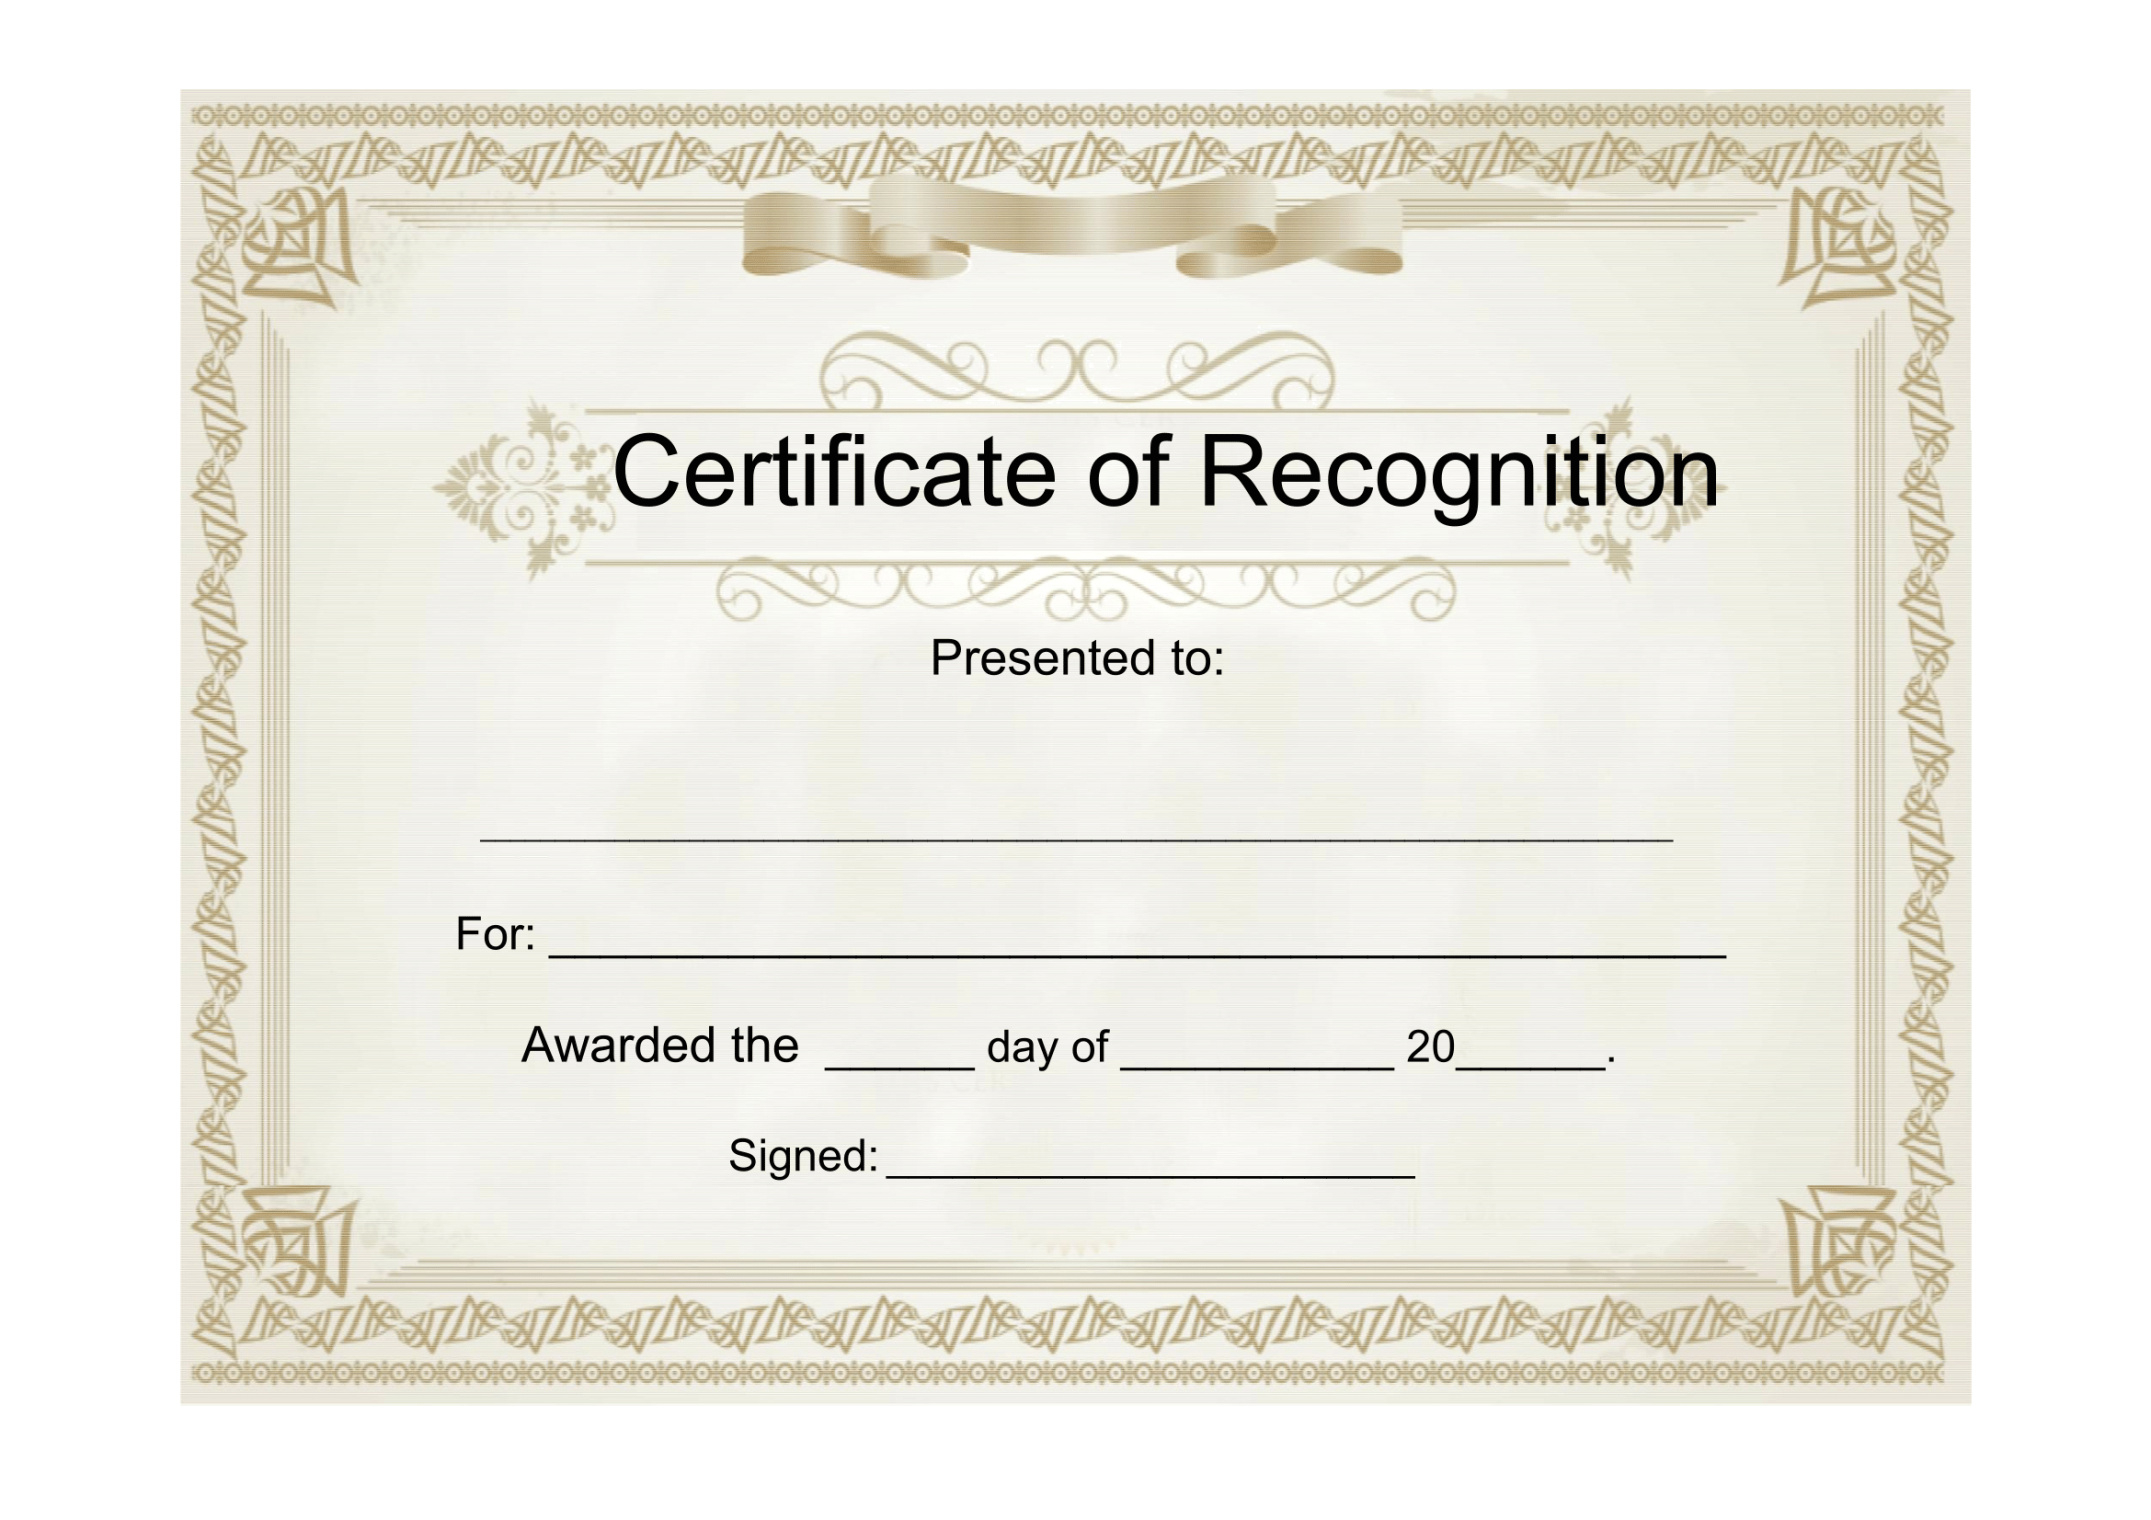 25 Useful Resources Of Certificate Of Recognition Template throughout Sample Certificate Of Recognition Template